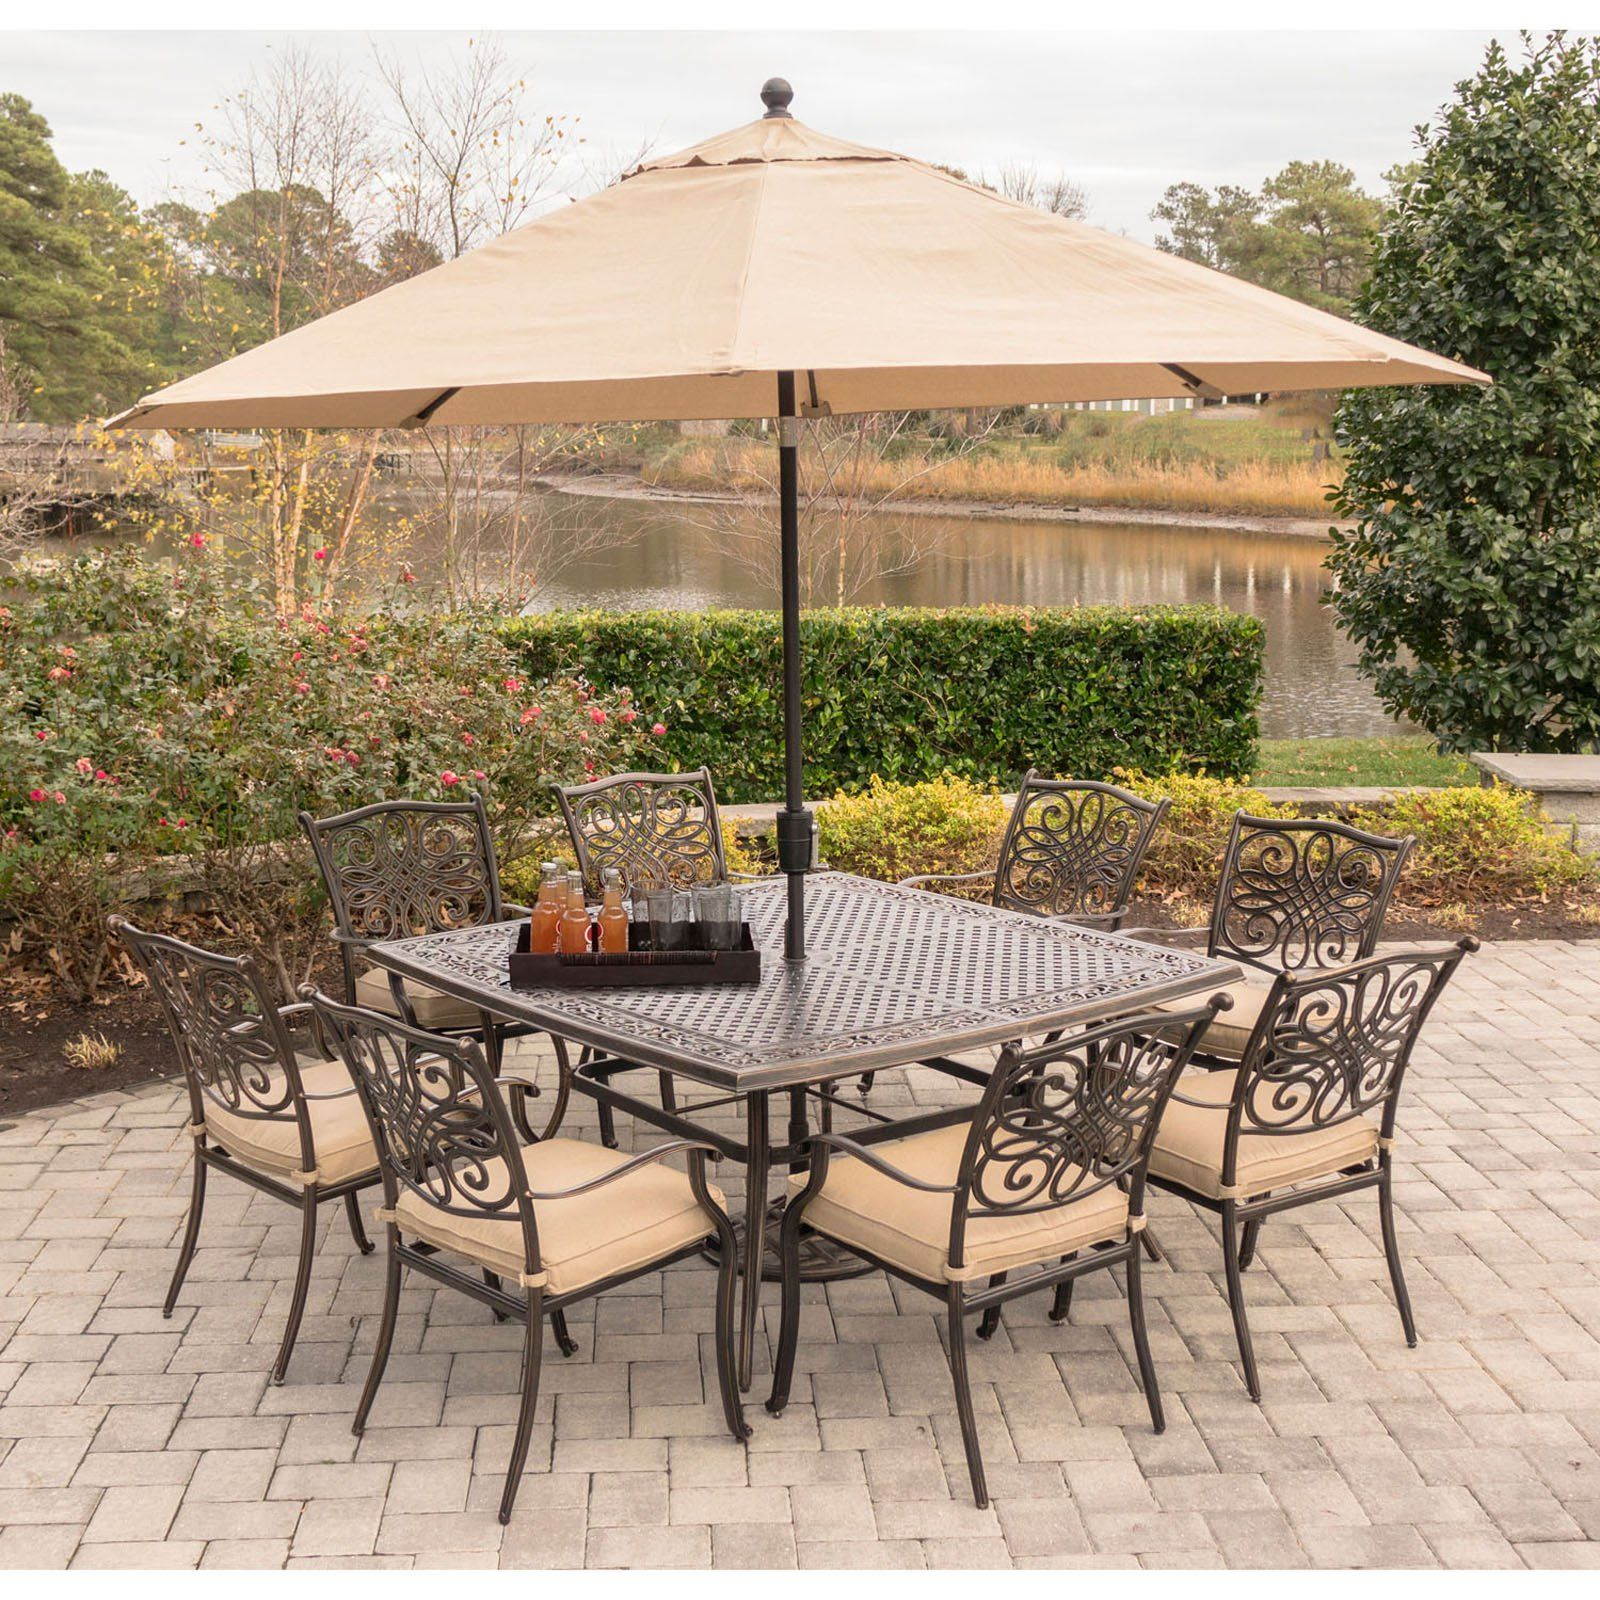 Hanover Traditions Aluminum 9 Piece Square Patio Dining Set